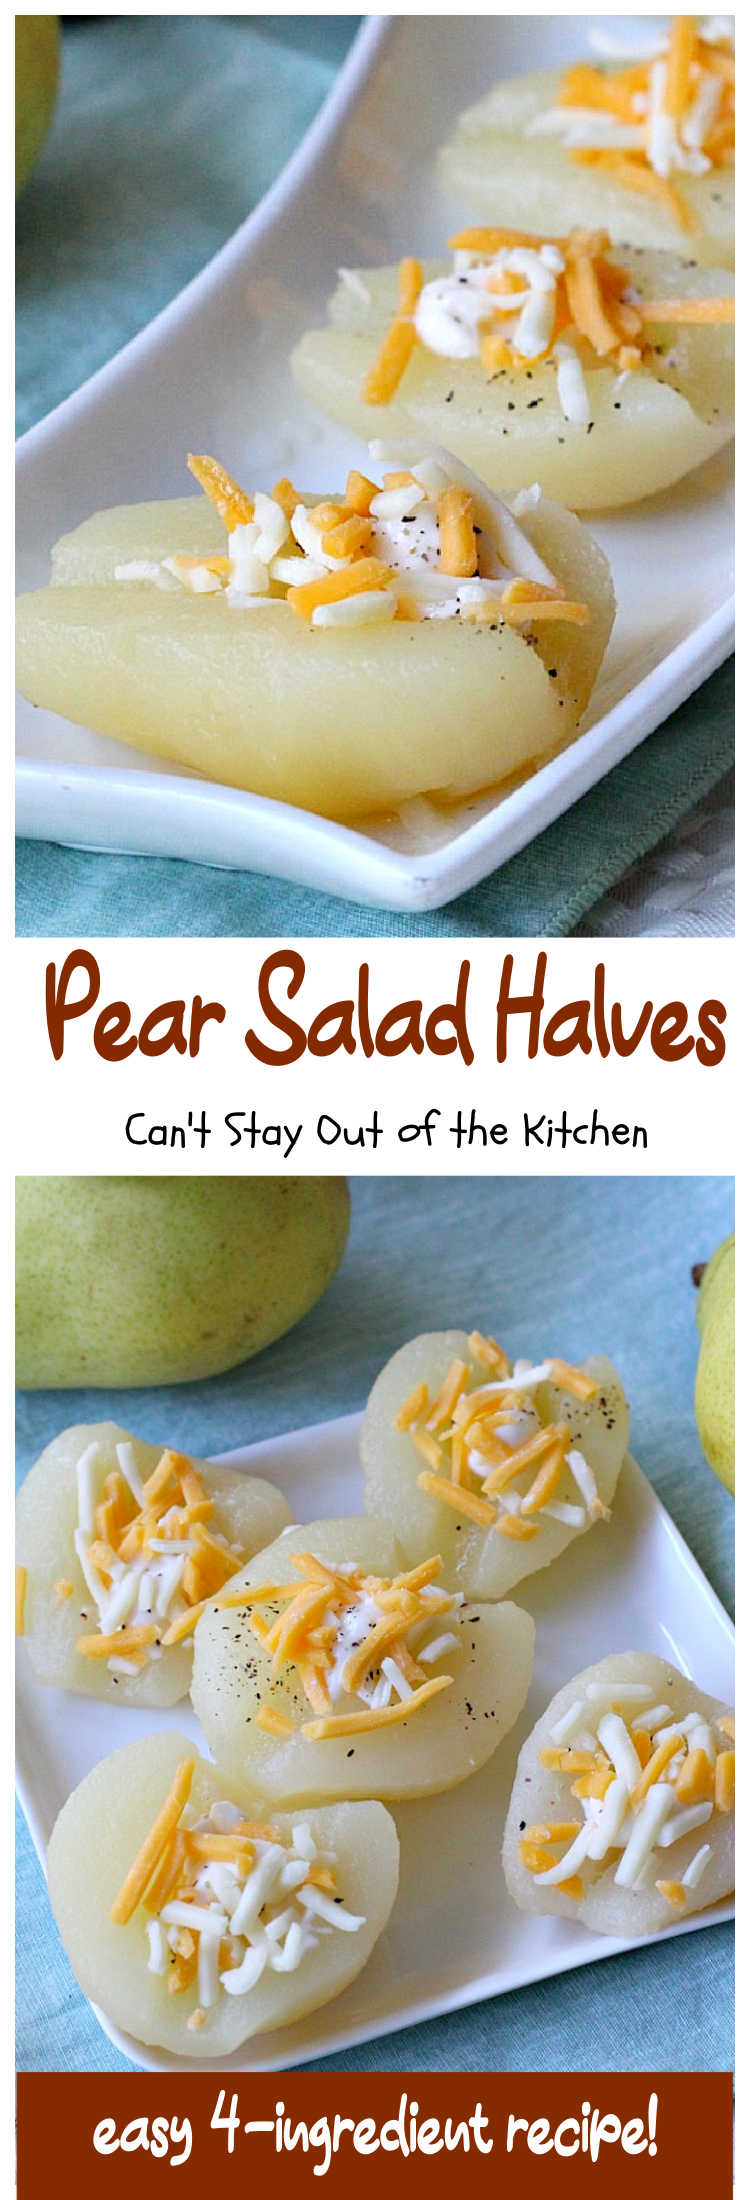 Pear Salad Halves | Can't Stay Out of the Kitchen | This amazing #recipe will have everyone asking for more! It's such a quick and easy way to serve #pears. Only 4-ingredients needed for this lovely #fruit #salad. #FruitSalad #GlutenFree #cheese #PearSaladHalves